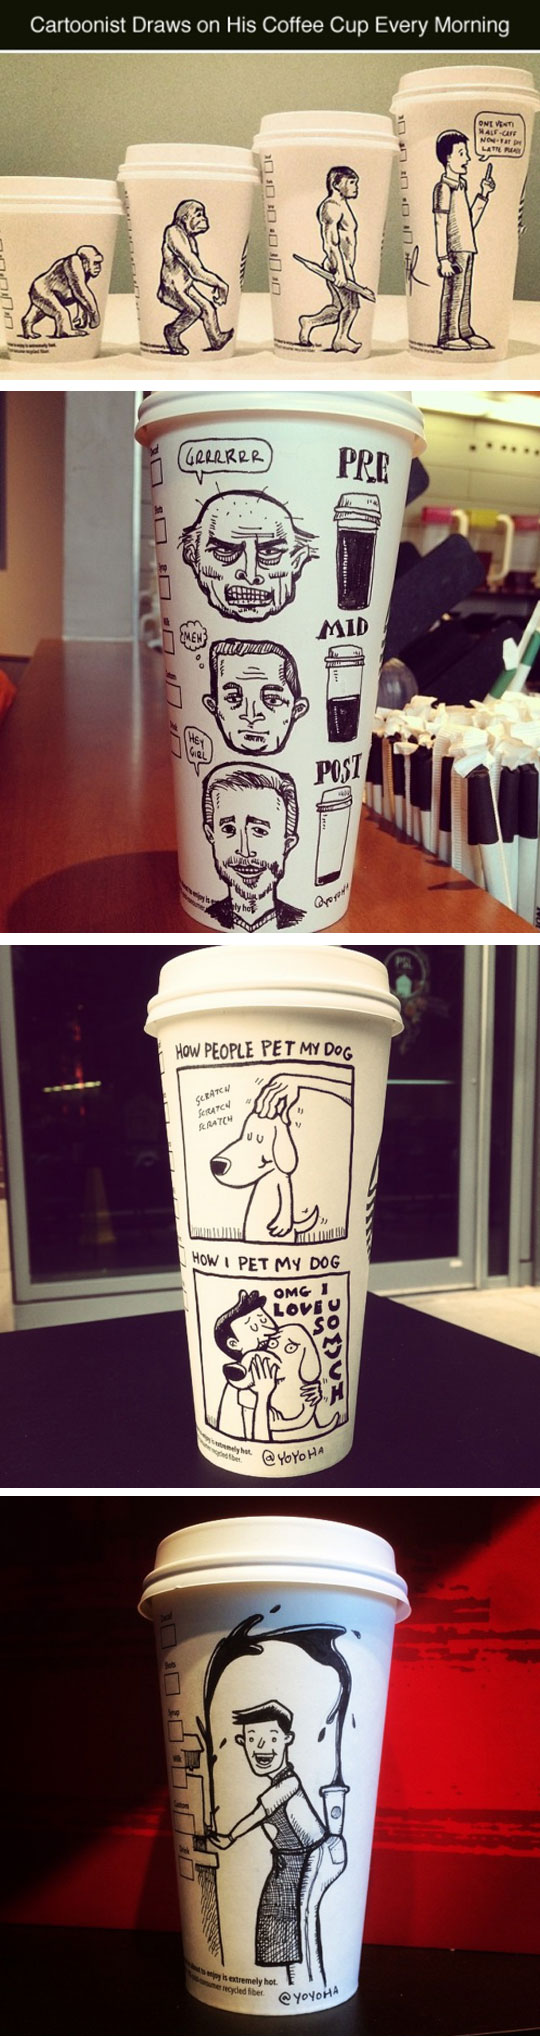 Drawing A Coffee Cup Every Morning